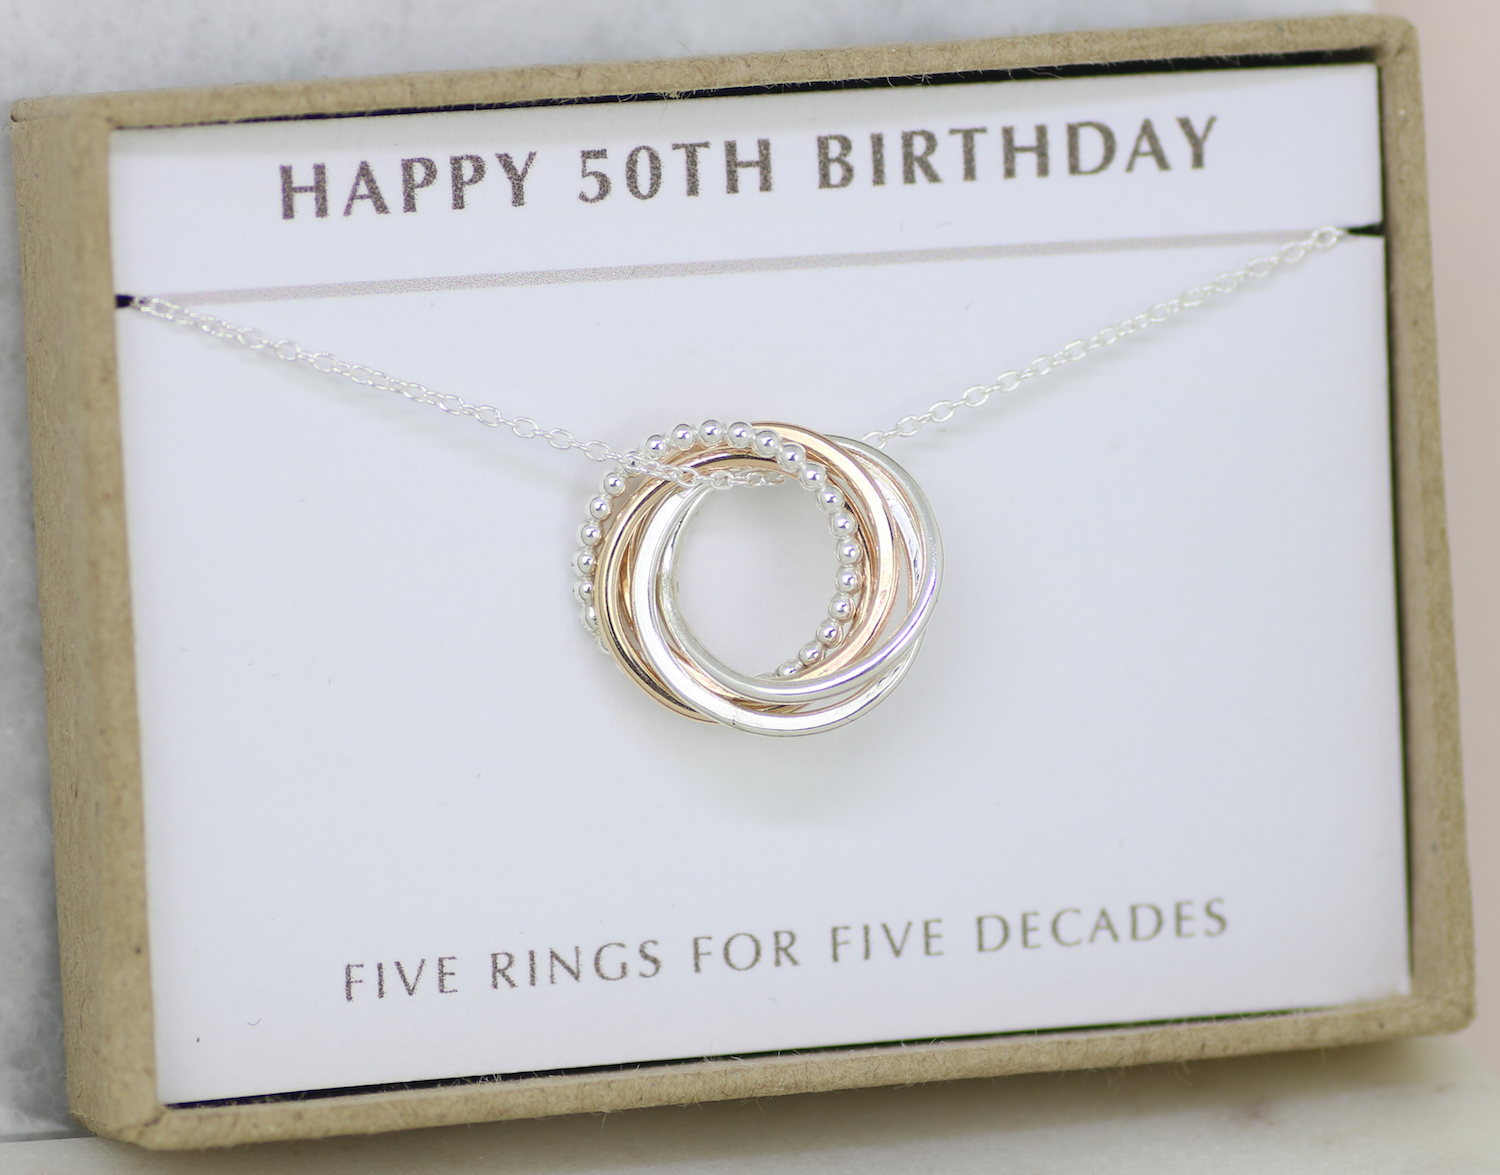 50th Birthday Gift Dainty Necklace Sister Wife Friend